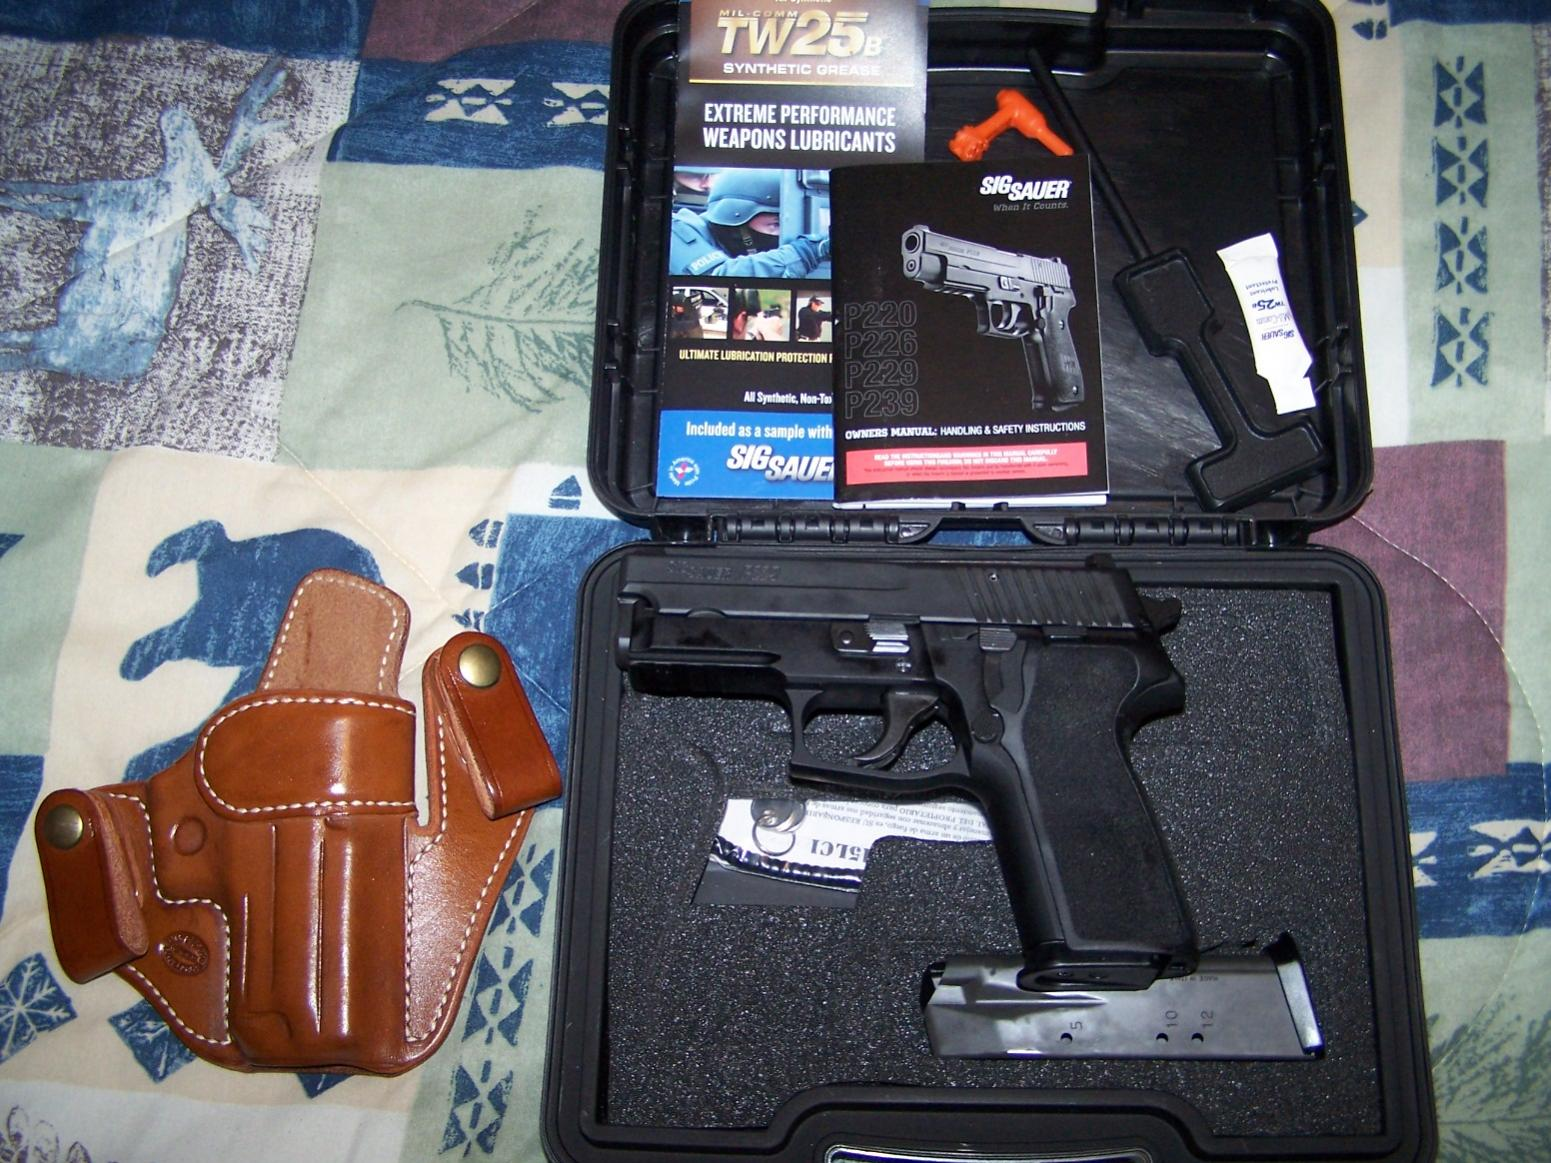 Having trouble getting used to my new sig sauer p229r 40s&w-sig-p229r-001.jpg